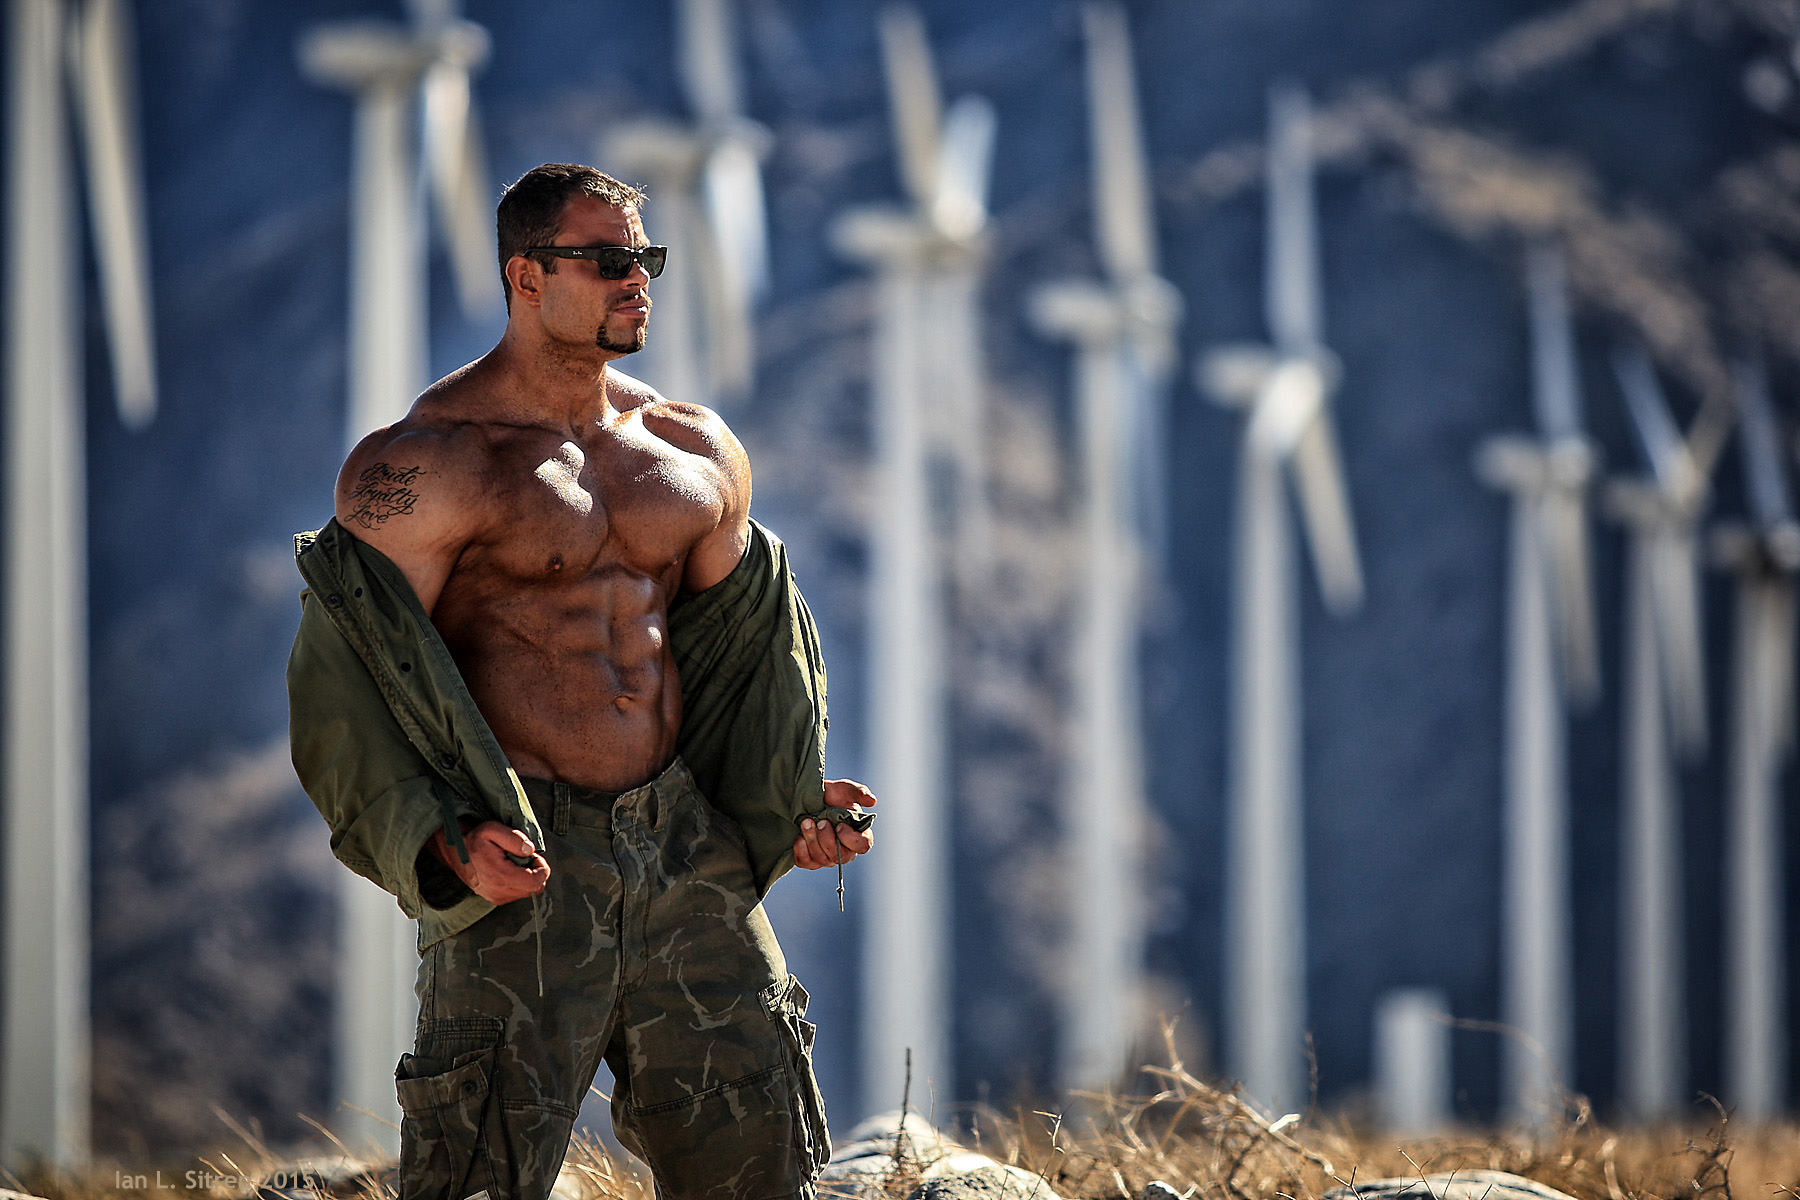 Bodybuilder Daniel Hill in at the windmills Palm Springs California